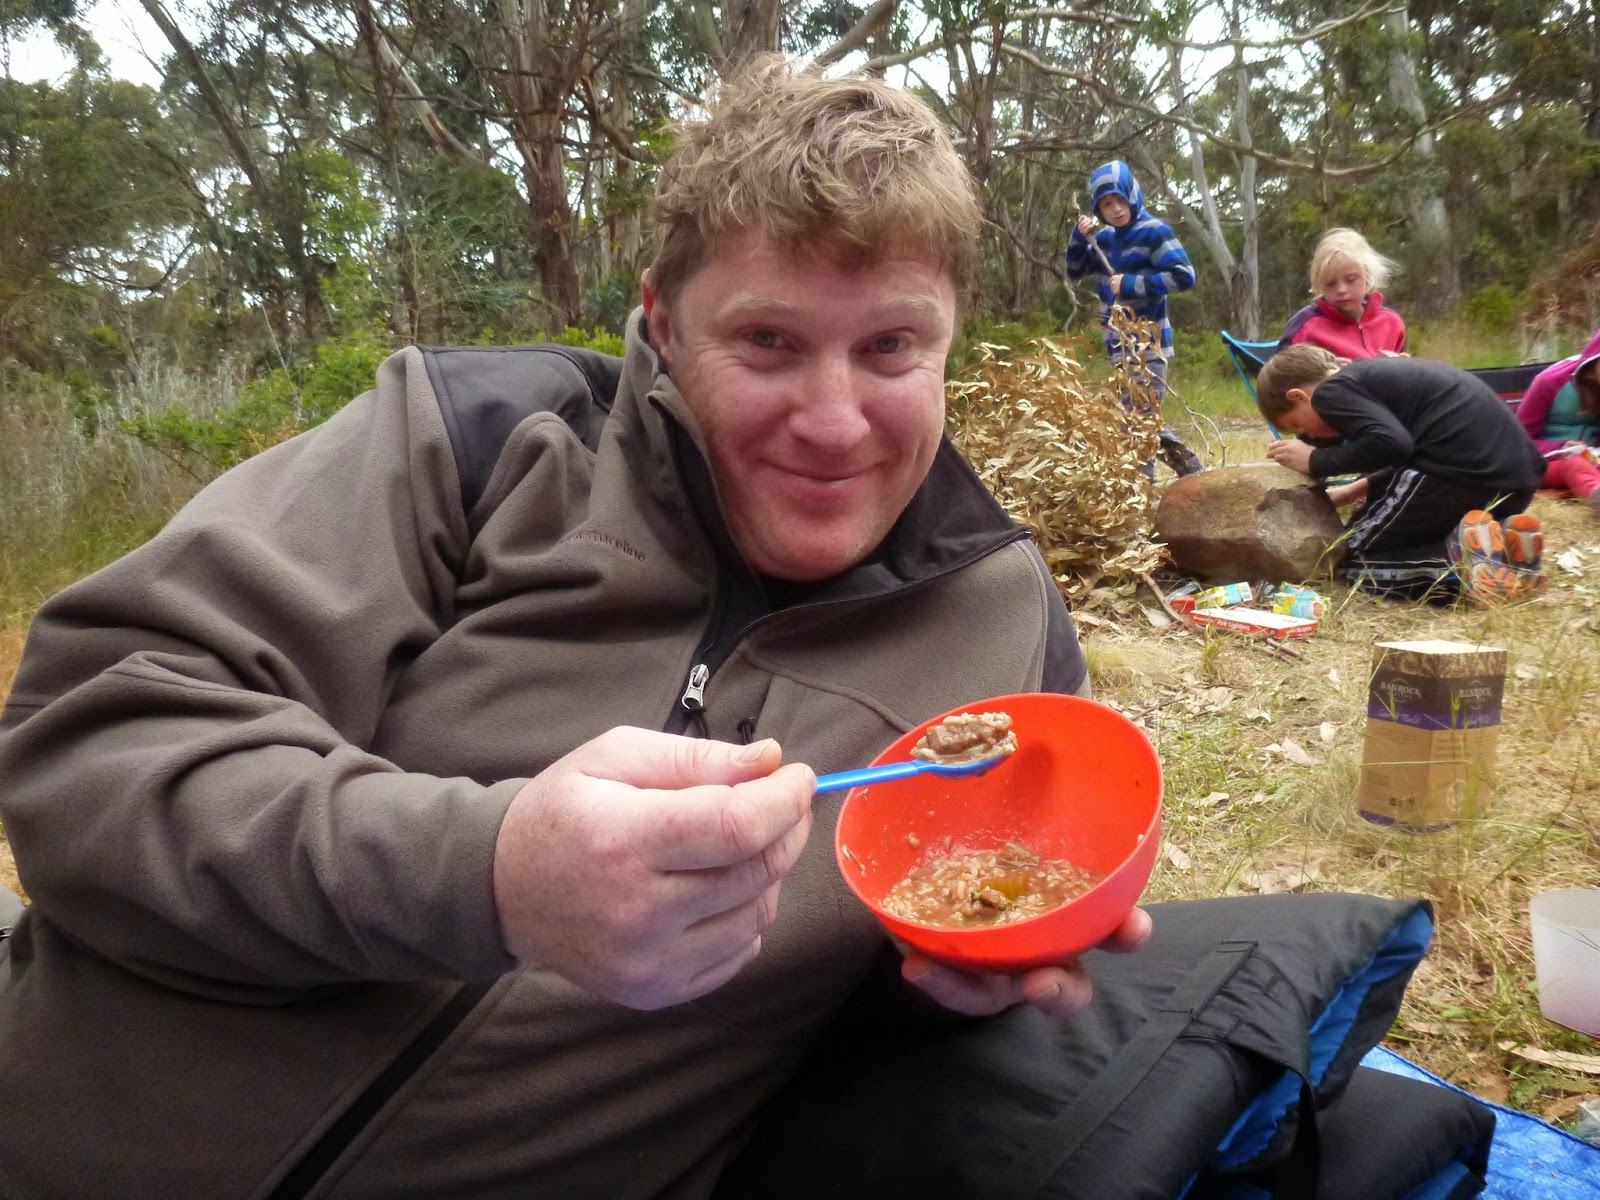 Tassie Rambler November 2014 Line Circuit Blog The Kids No Are Fine Theyre Just Behind Me Playing With Matches Now Leave Alone Im Eating This Yummy Casserole